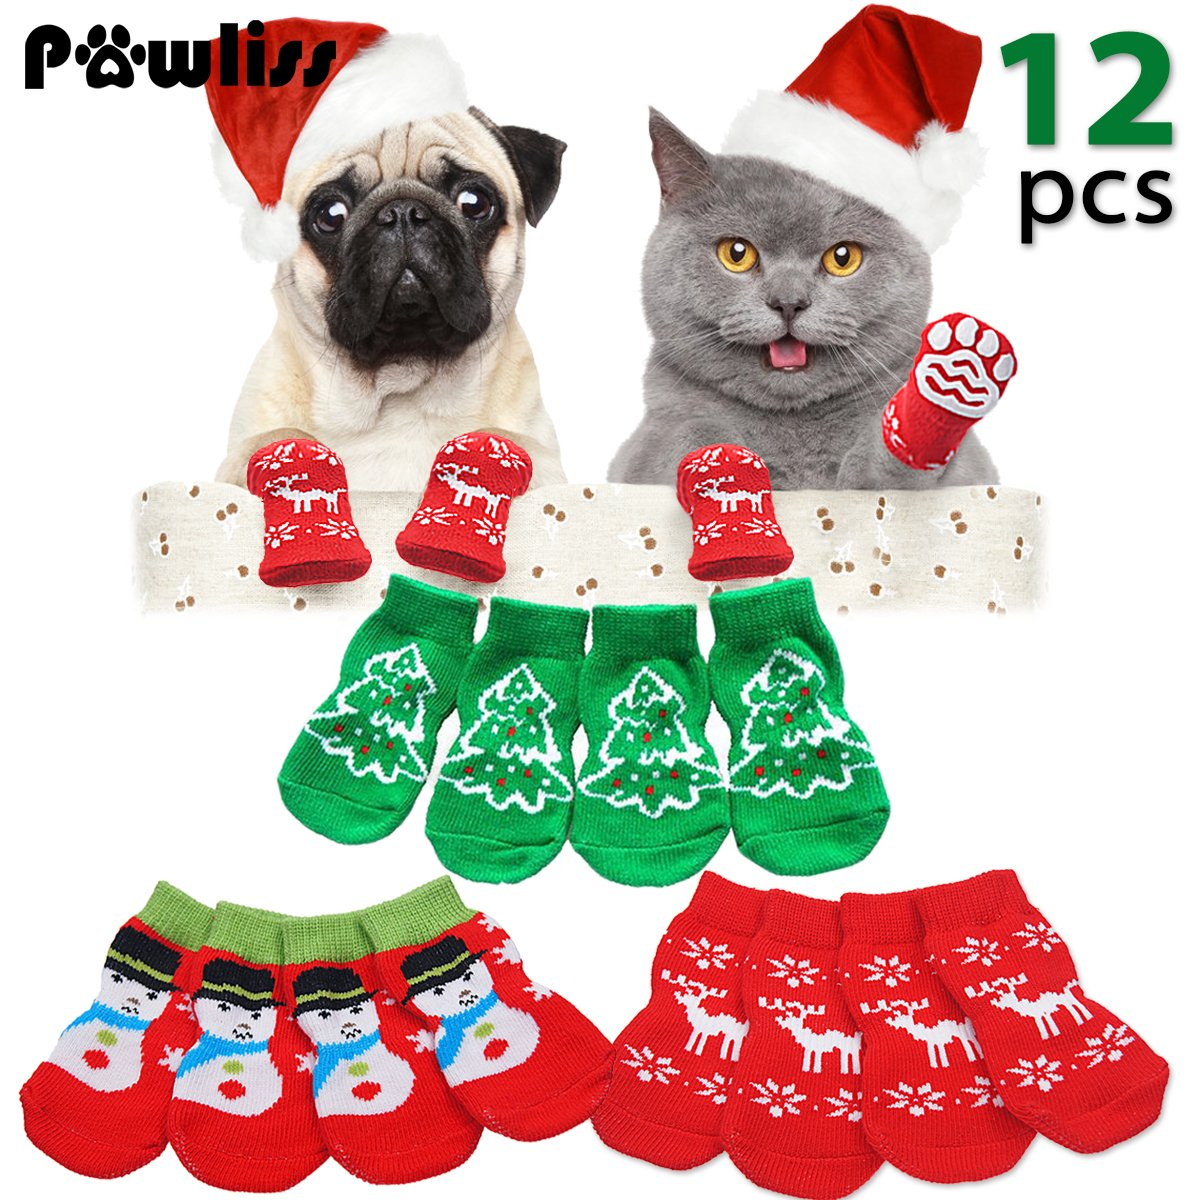 Dog Socks_m Pawliss 3 Pairs Christmas Pet Costumes Indoor Anti-Slip Cotton Dog Socks, Reindeer Snowman Snowflake Xmas Tree Pattern, Middle Size for Bigger Small Dogs